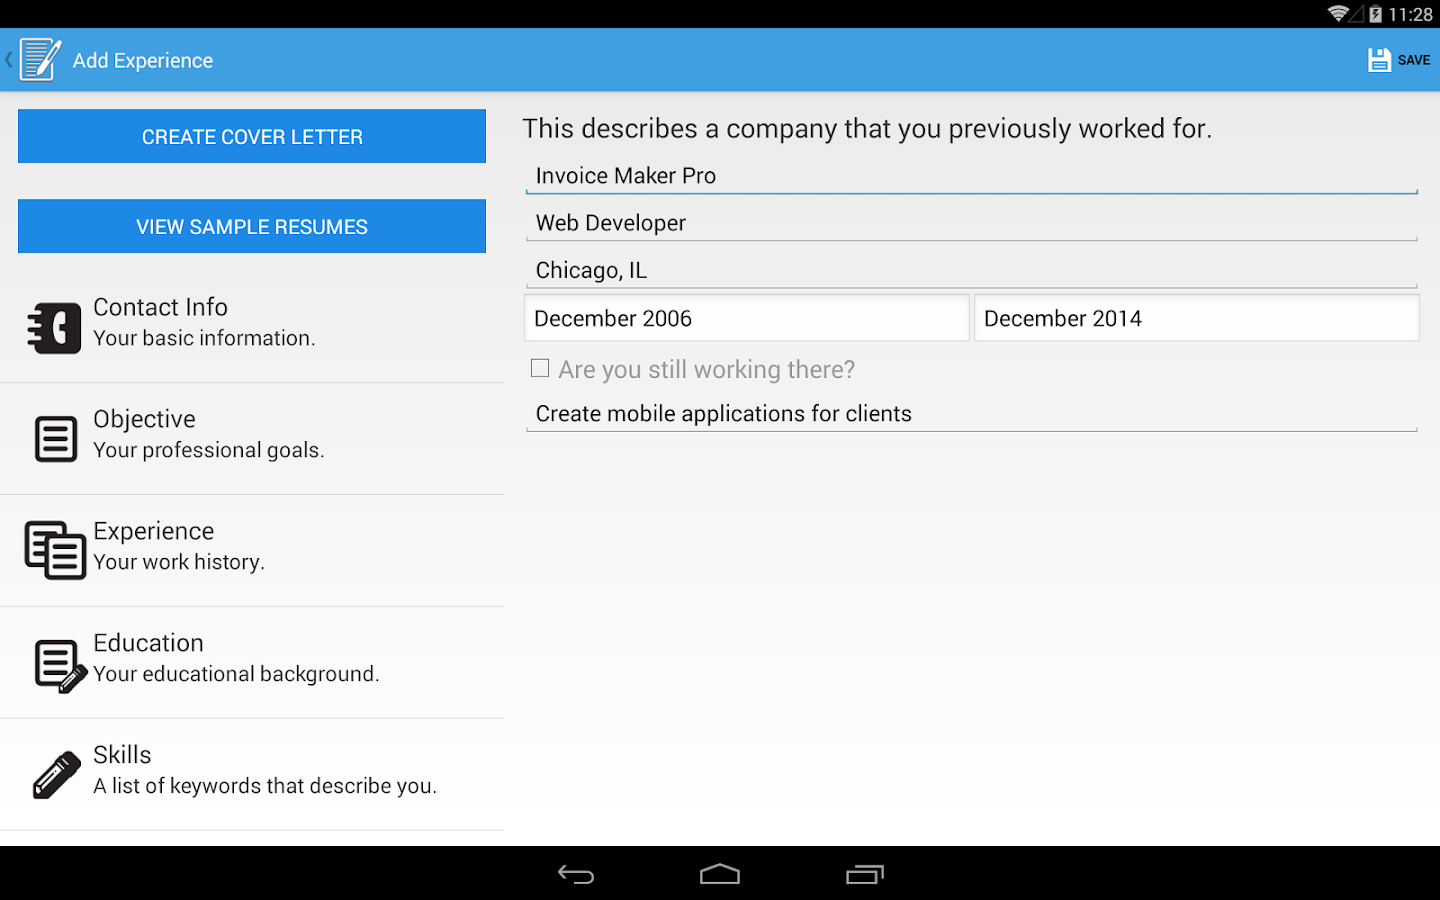 Resume Builder ProAndroid Apps on Google Play